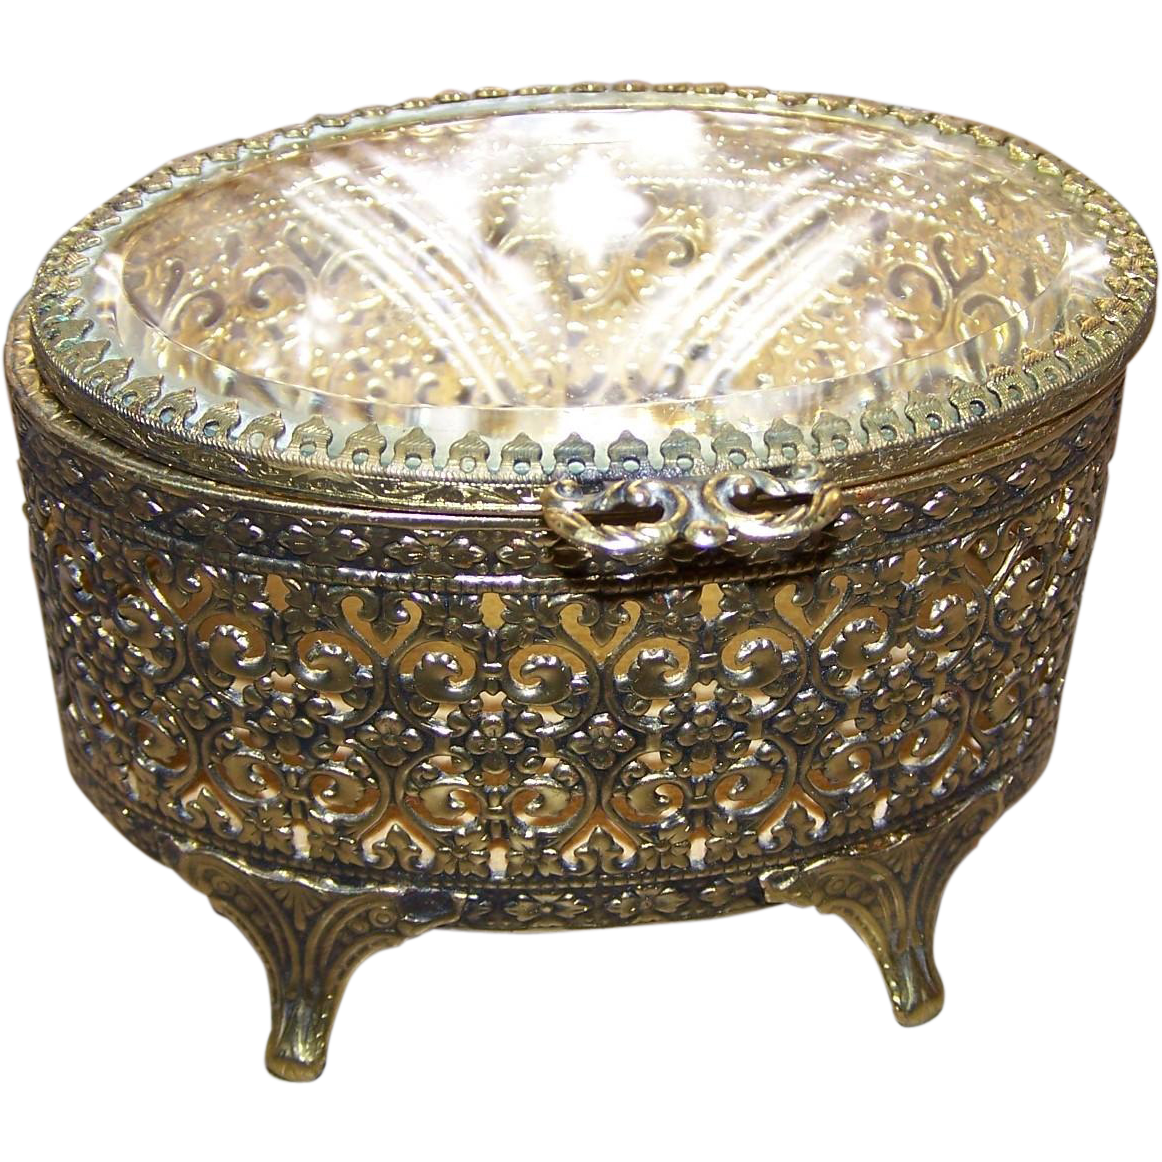 Lovely vintage open work metal ware ormolu stylejewelry for L furniture warehouse victoria bc